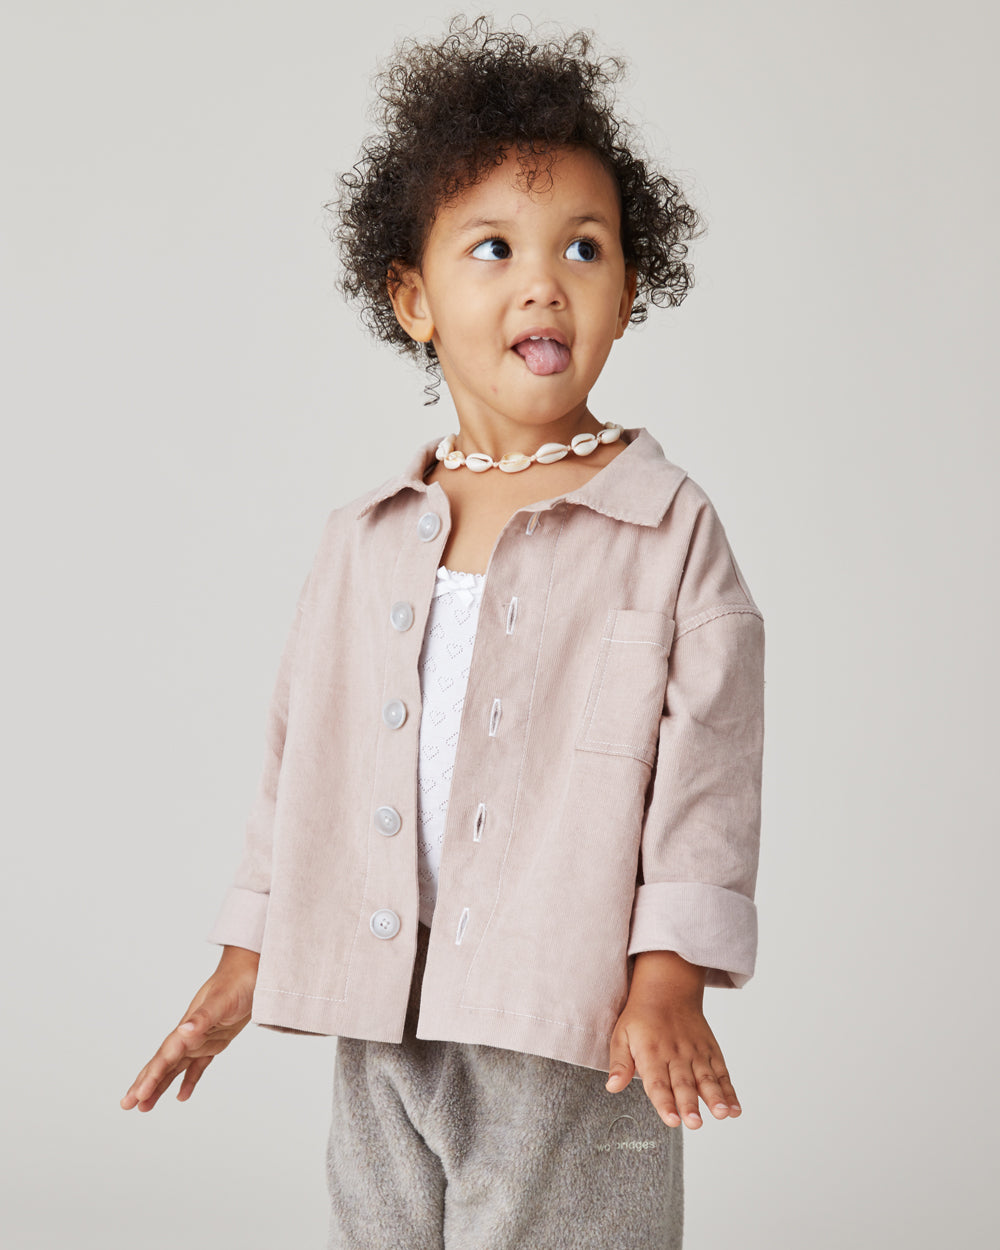 Seneca Shirt in Mauve